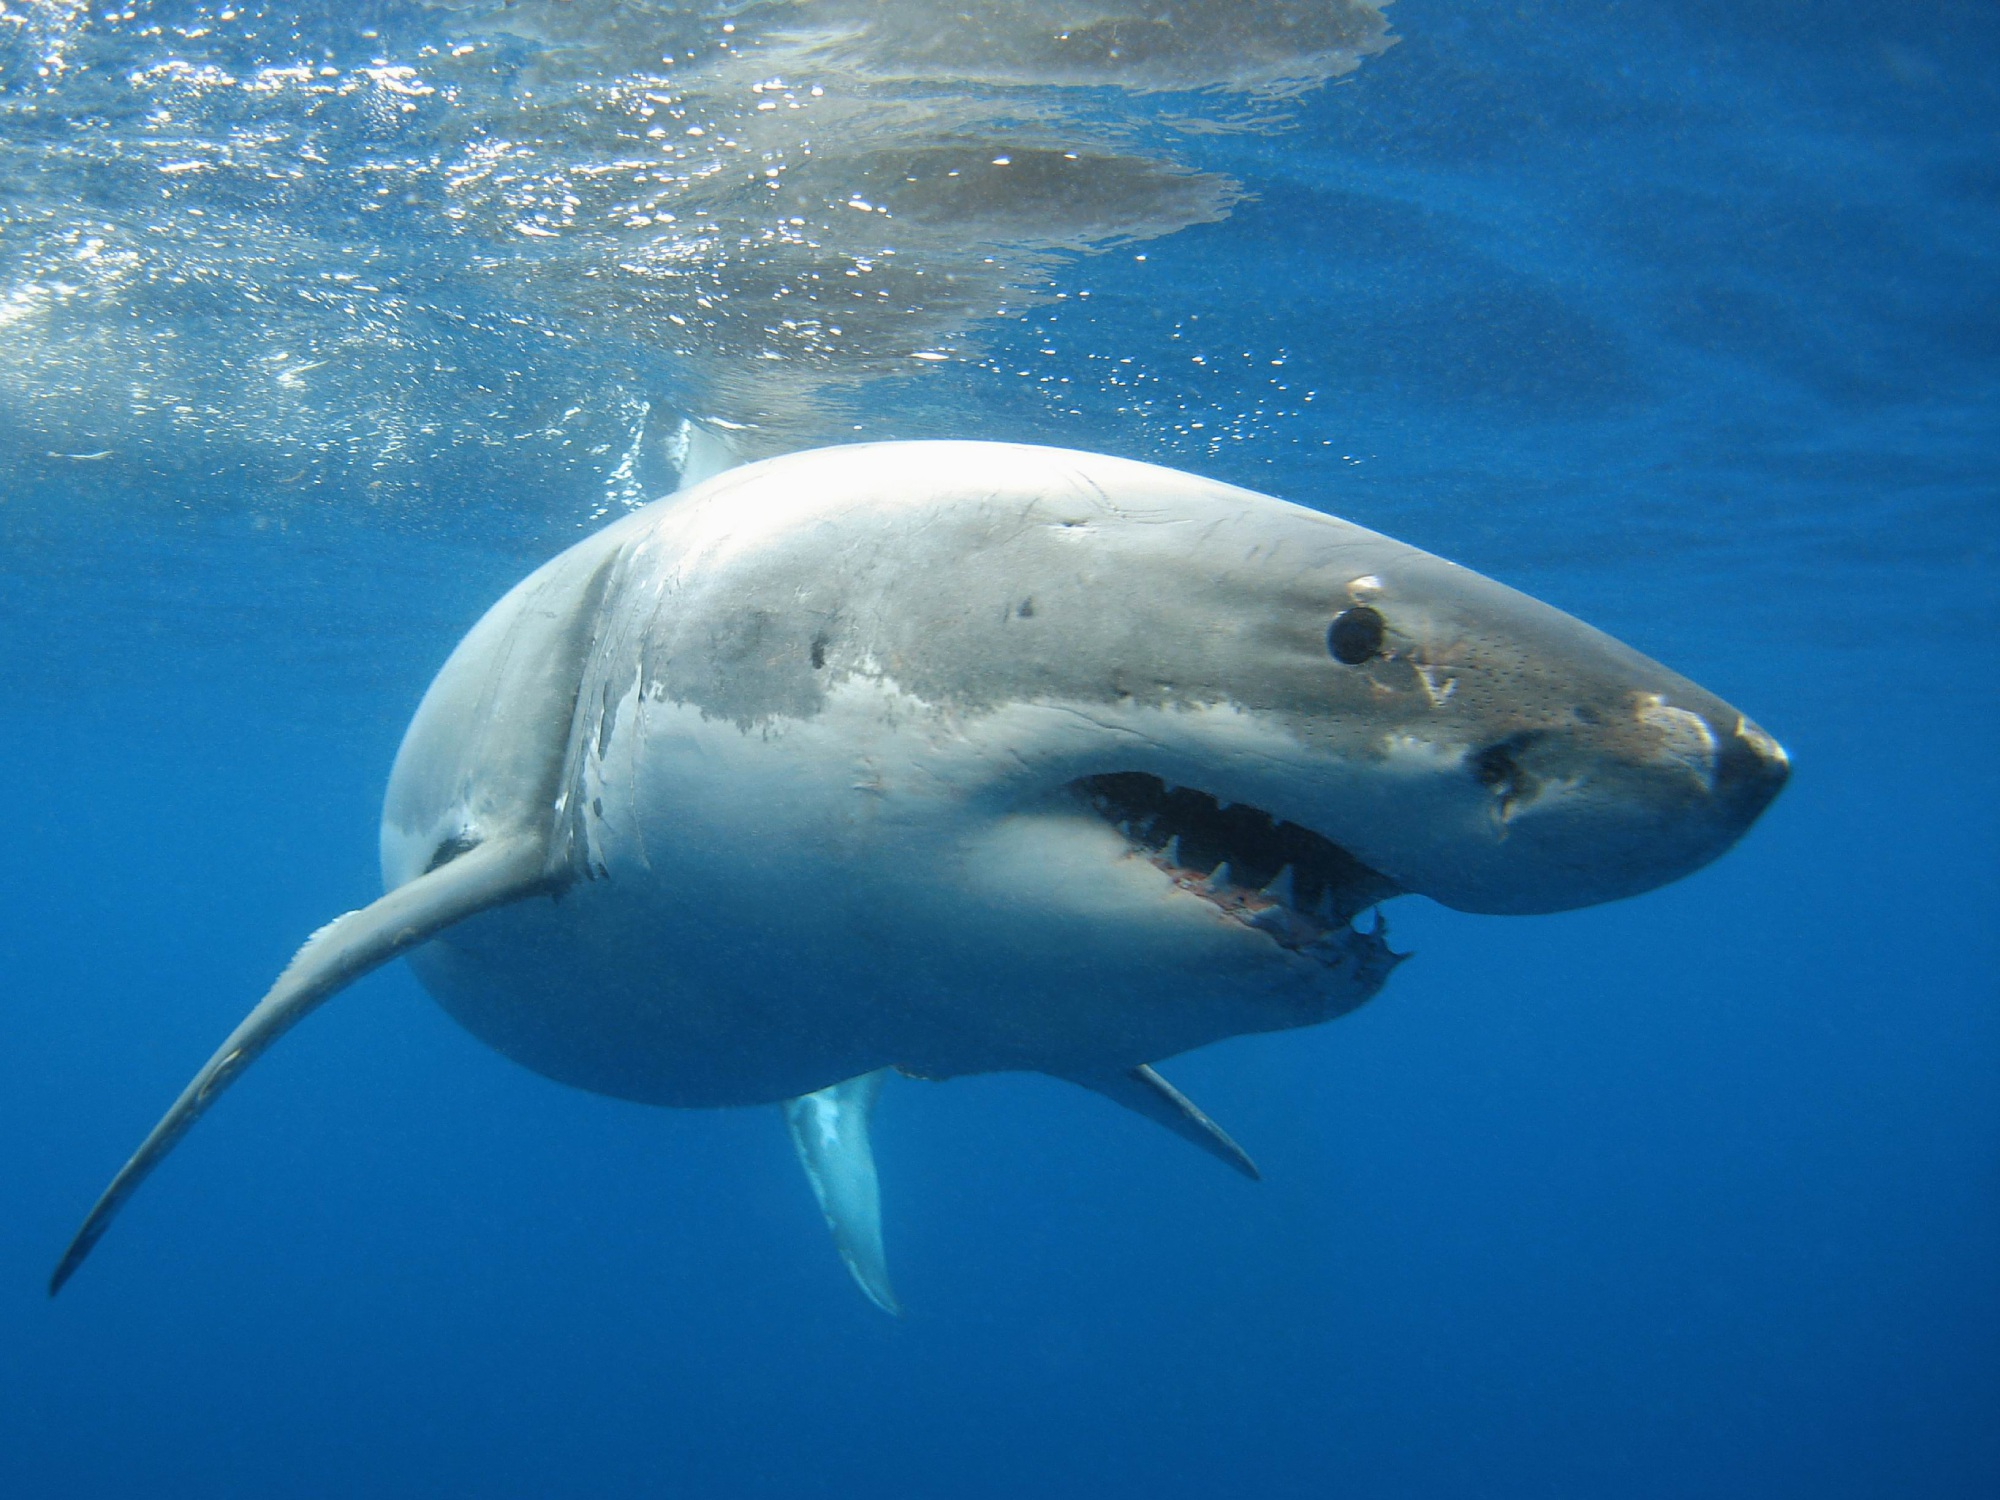 Fisheries take emergency action after record number of shark sightings